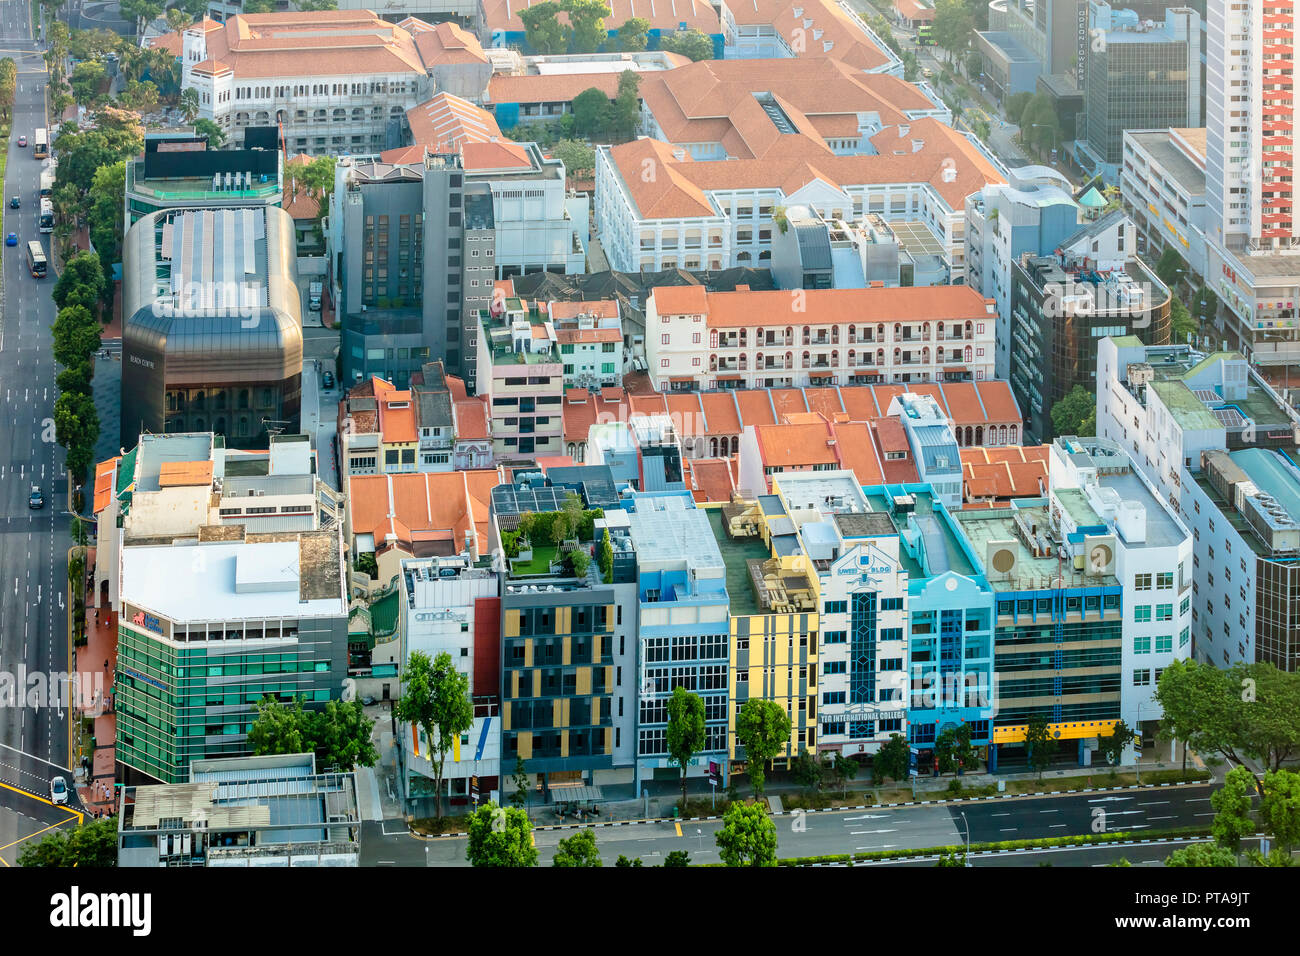 Singapore, August 18, 2018: Aerial view of Kampong Glam area shophouses, Arab Street - Stock Image